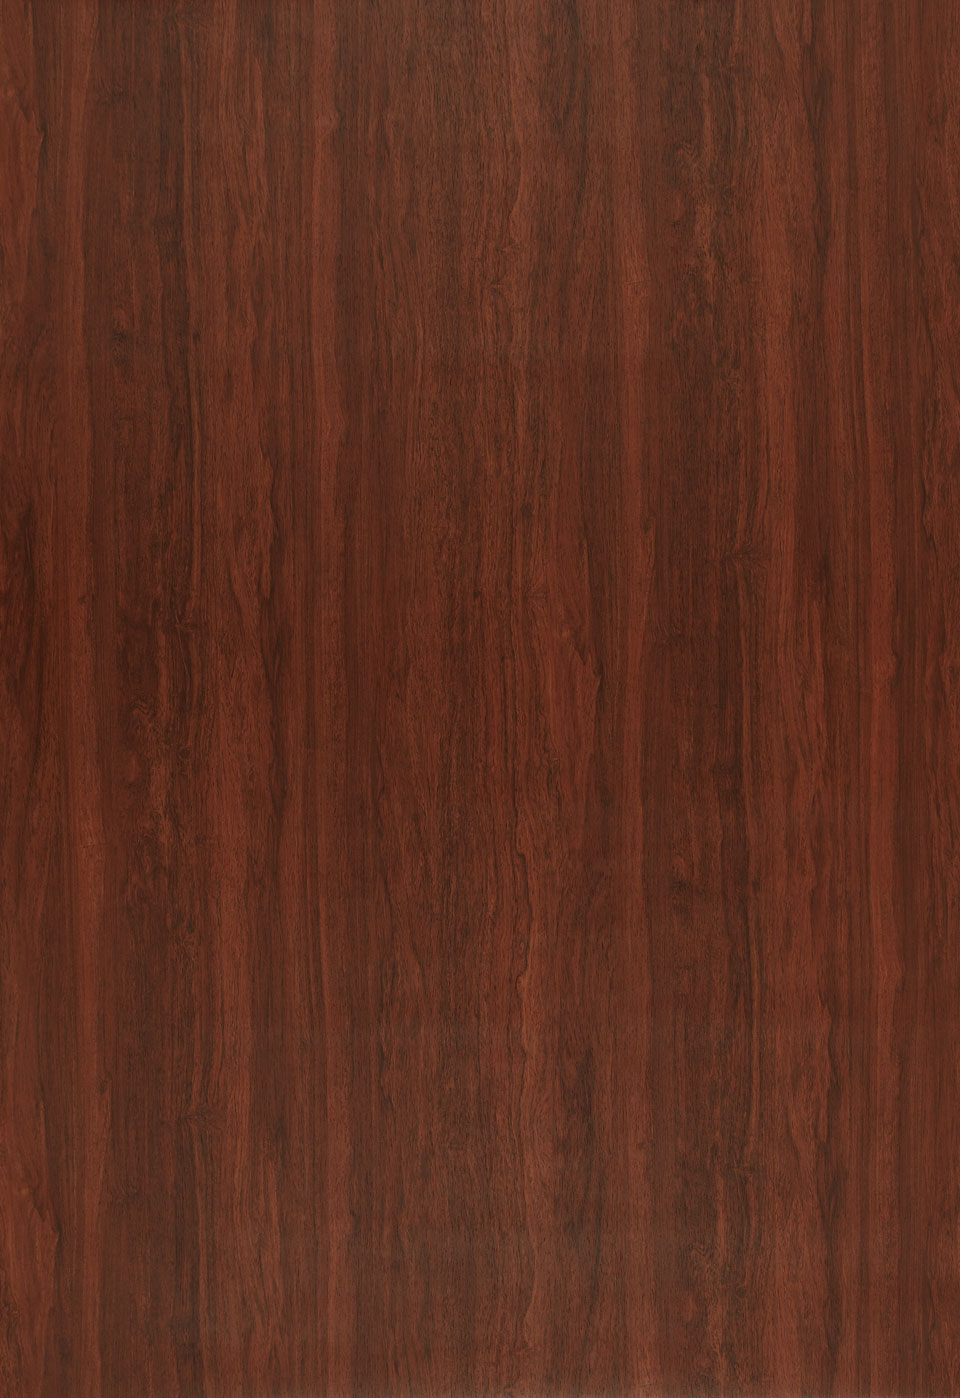 Wood Grain: Introducing The Luxe Lodge Wallcovering Collection